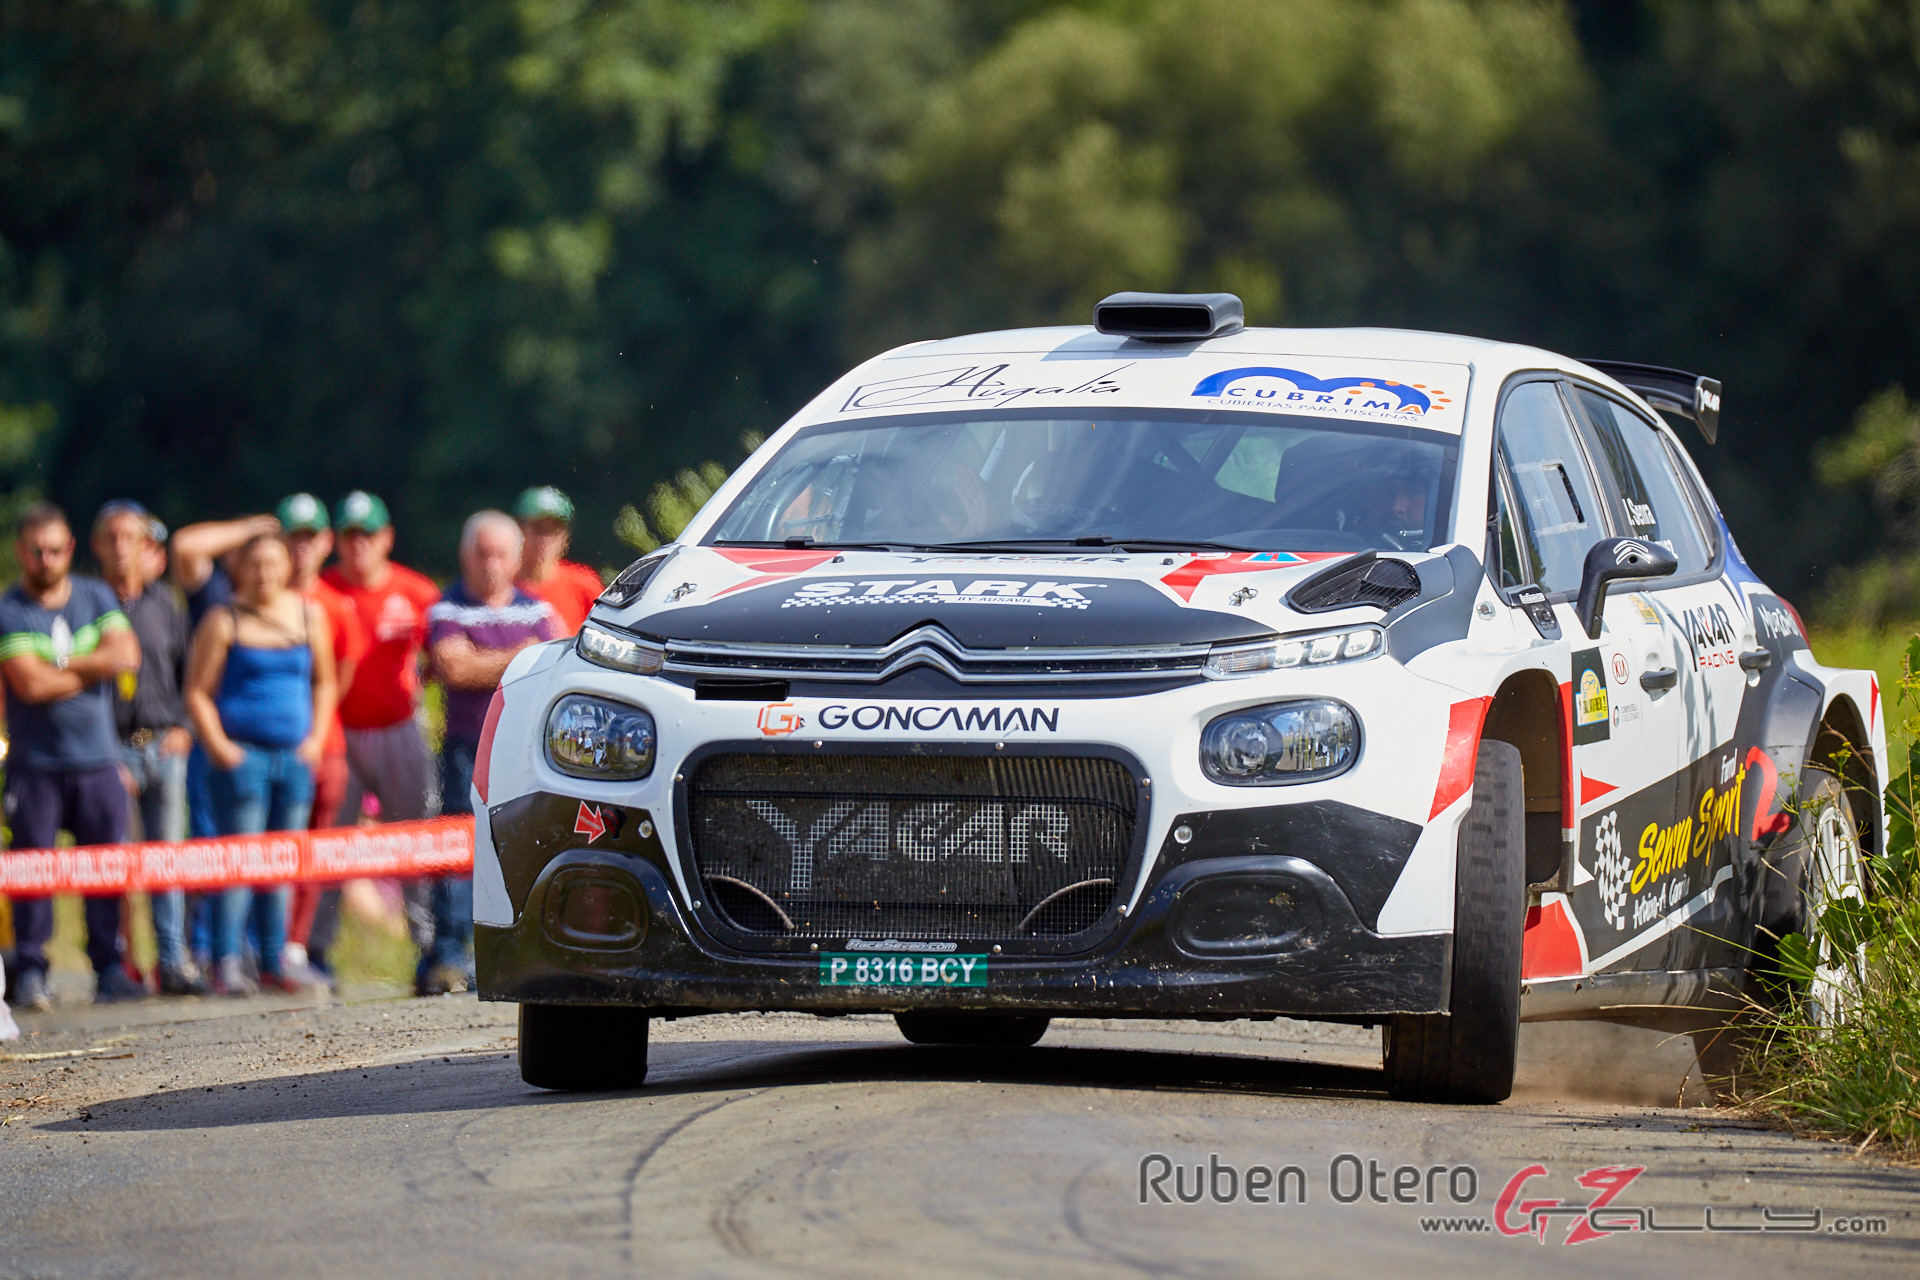 Rally do Botafumeiro 2019 - Ruben Otero